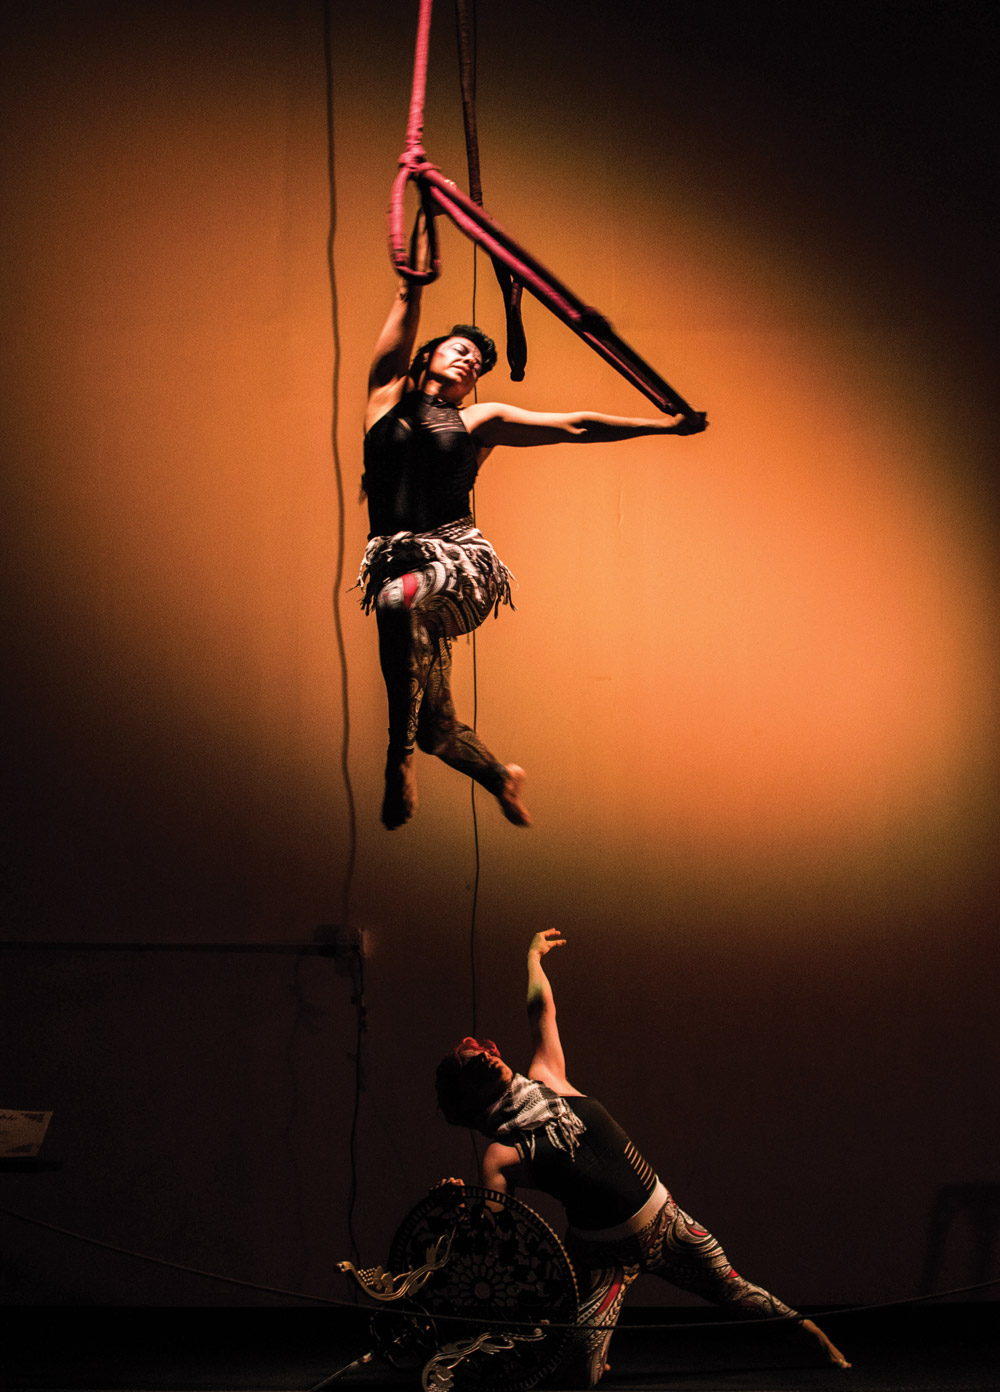 Performers hanging from the ceiling during an aerial silk routine